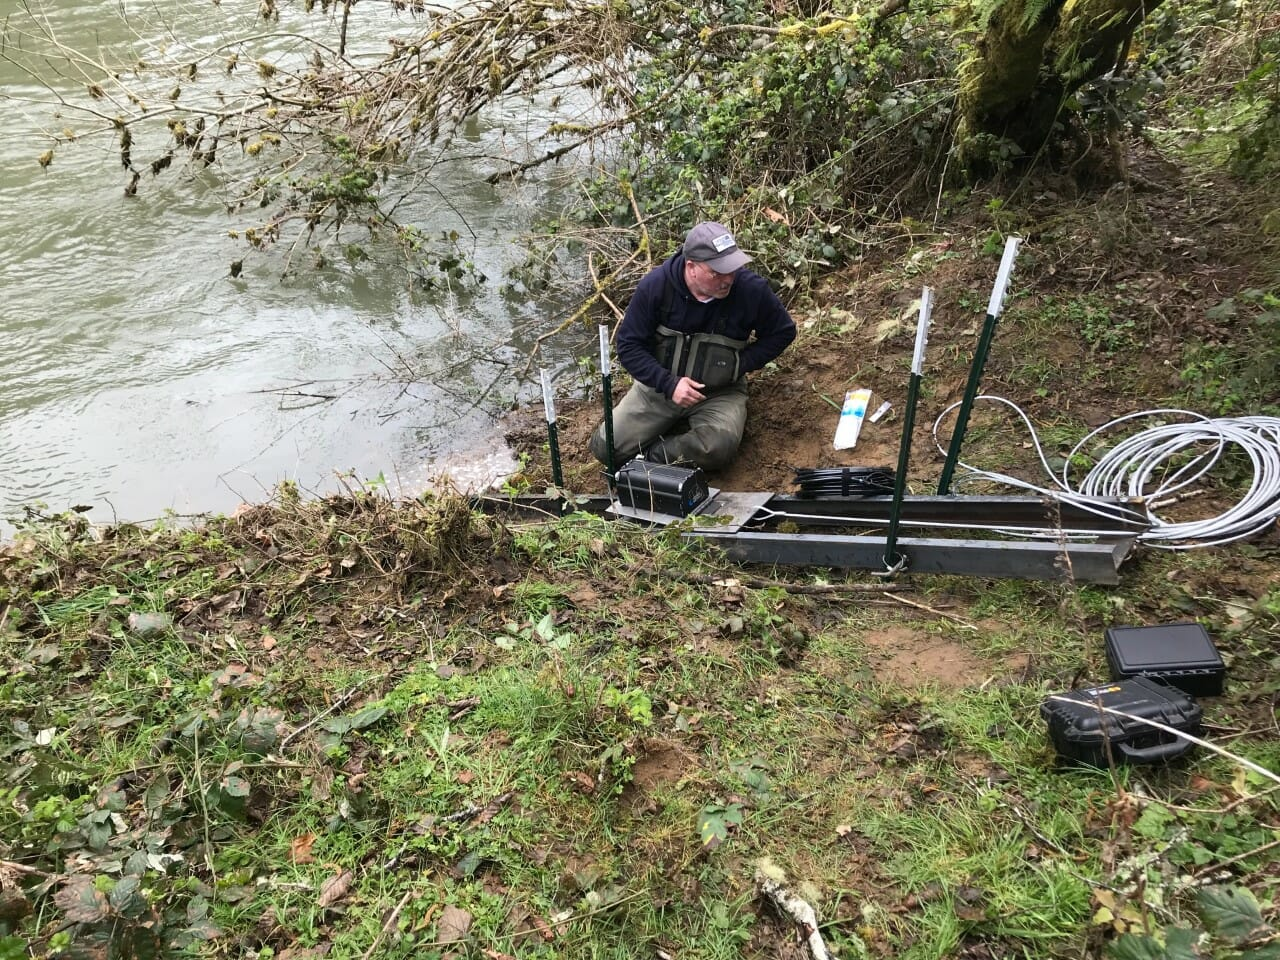 TU's Dean Finnerty checks on sonar equipment that counts fish moving up a southwest Oregon river.